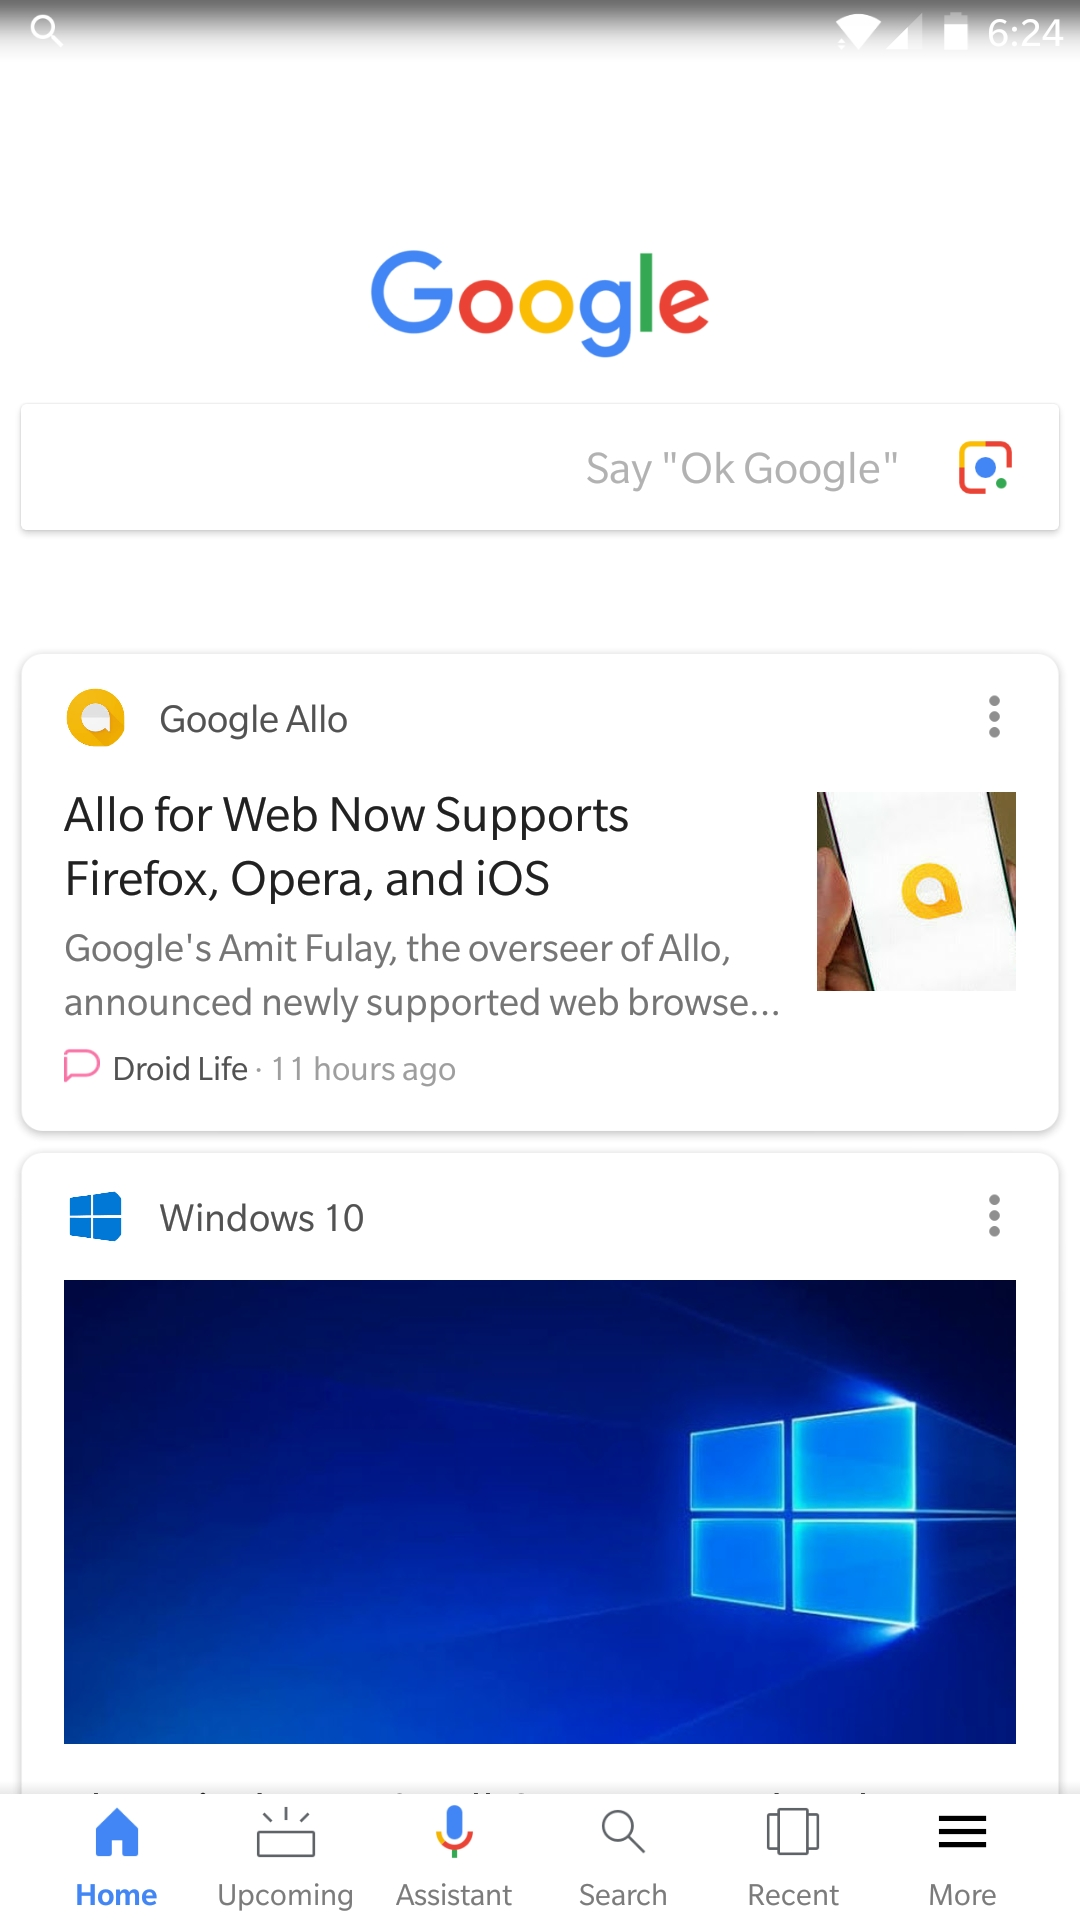 This is likely the Pixel 2's redesigned Google app w/ new